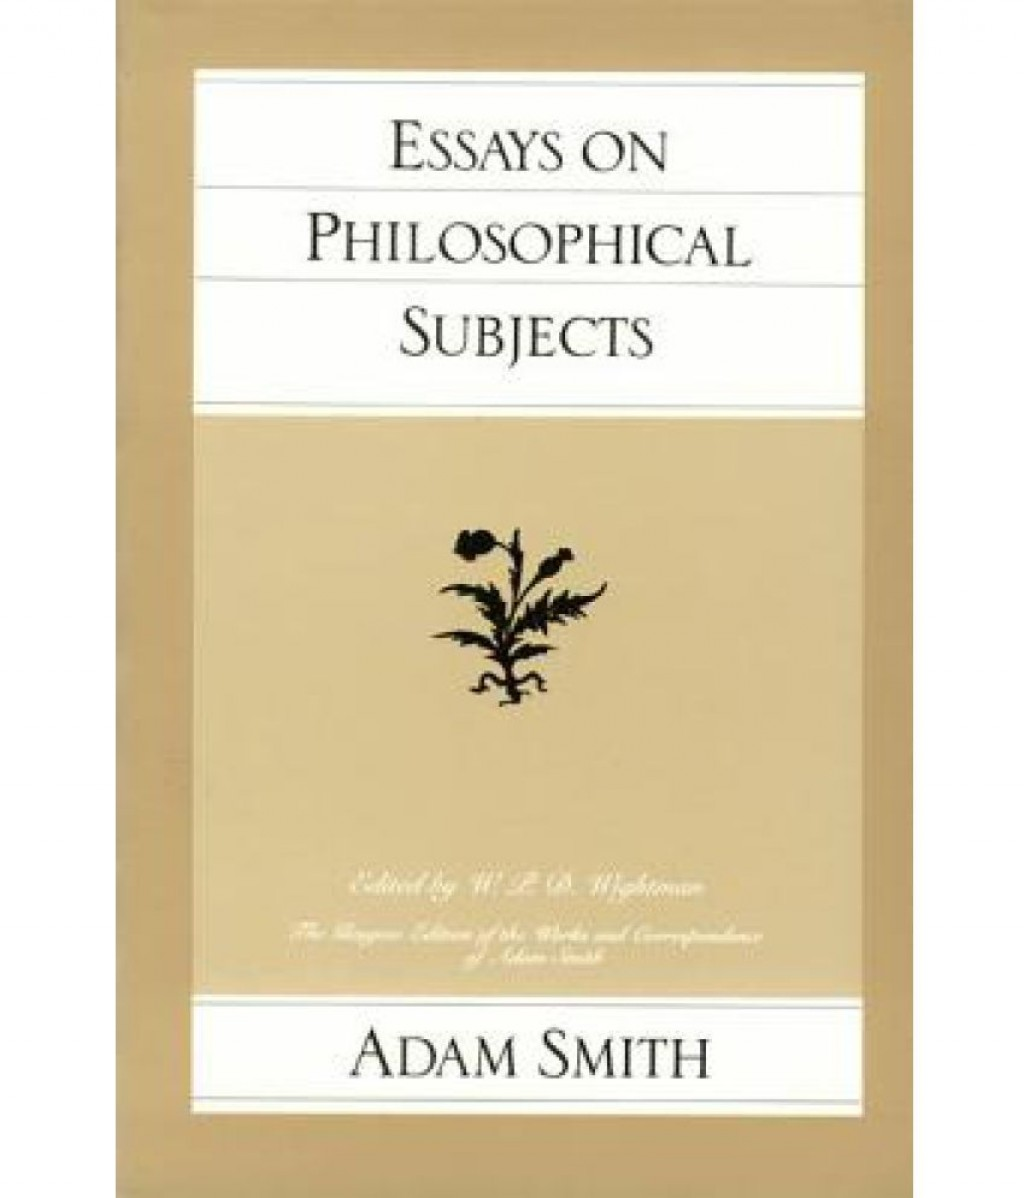 011 Essays On Philosophical Subjects Sdl274222681 Essay Best Summary Adam Smith Large